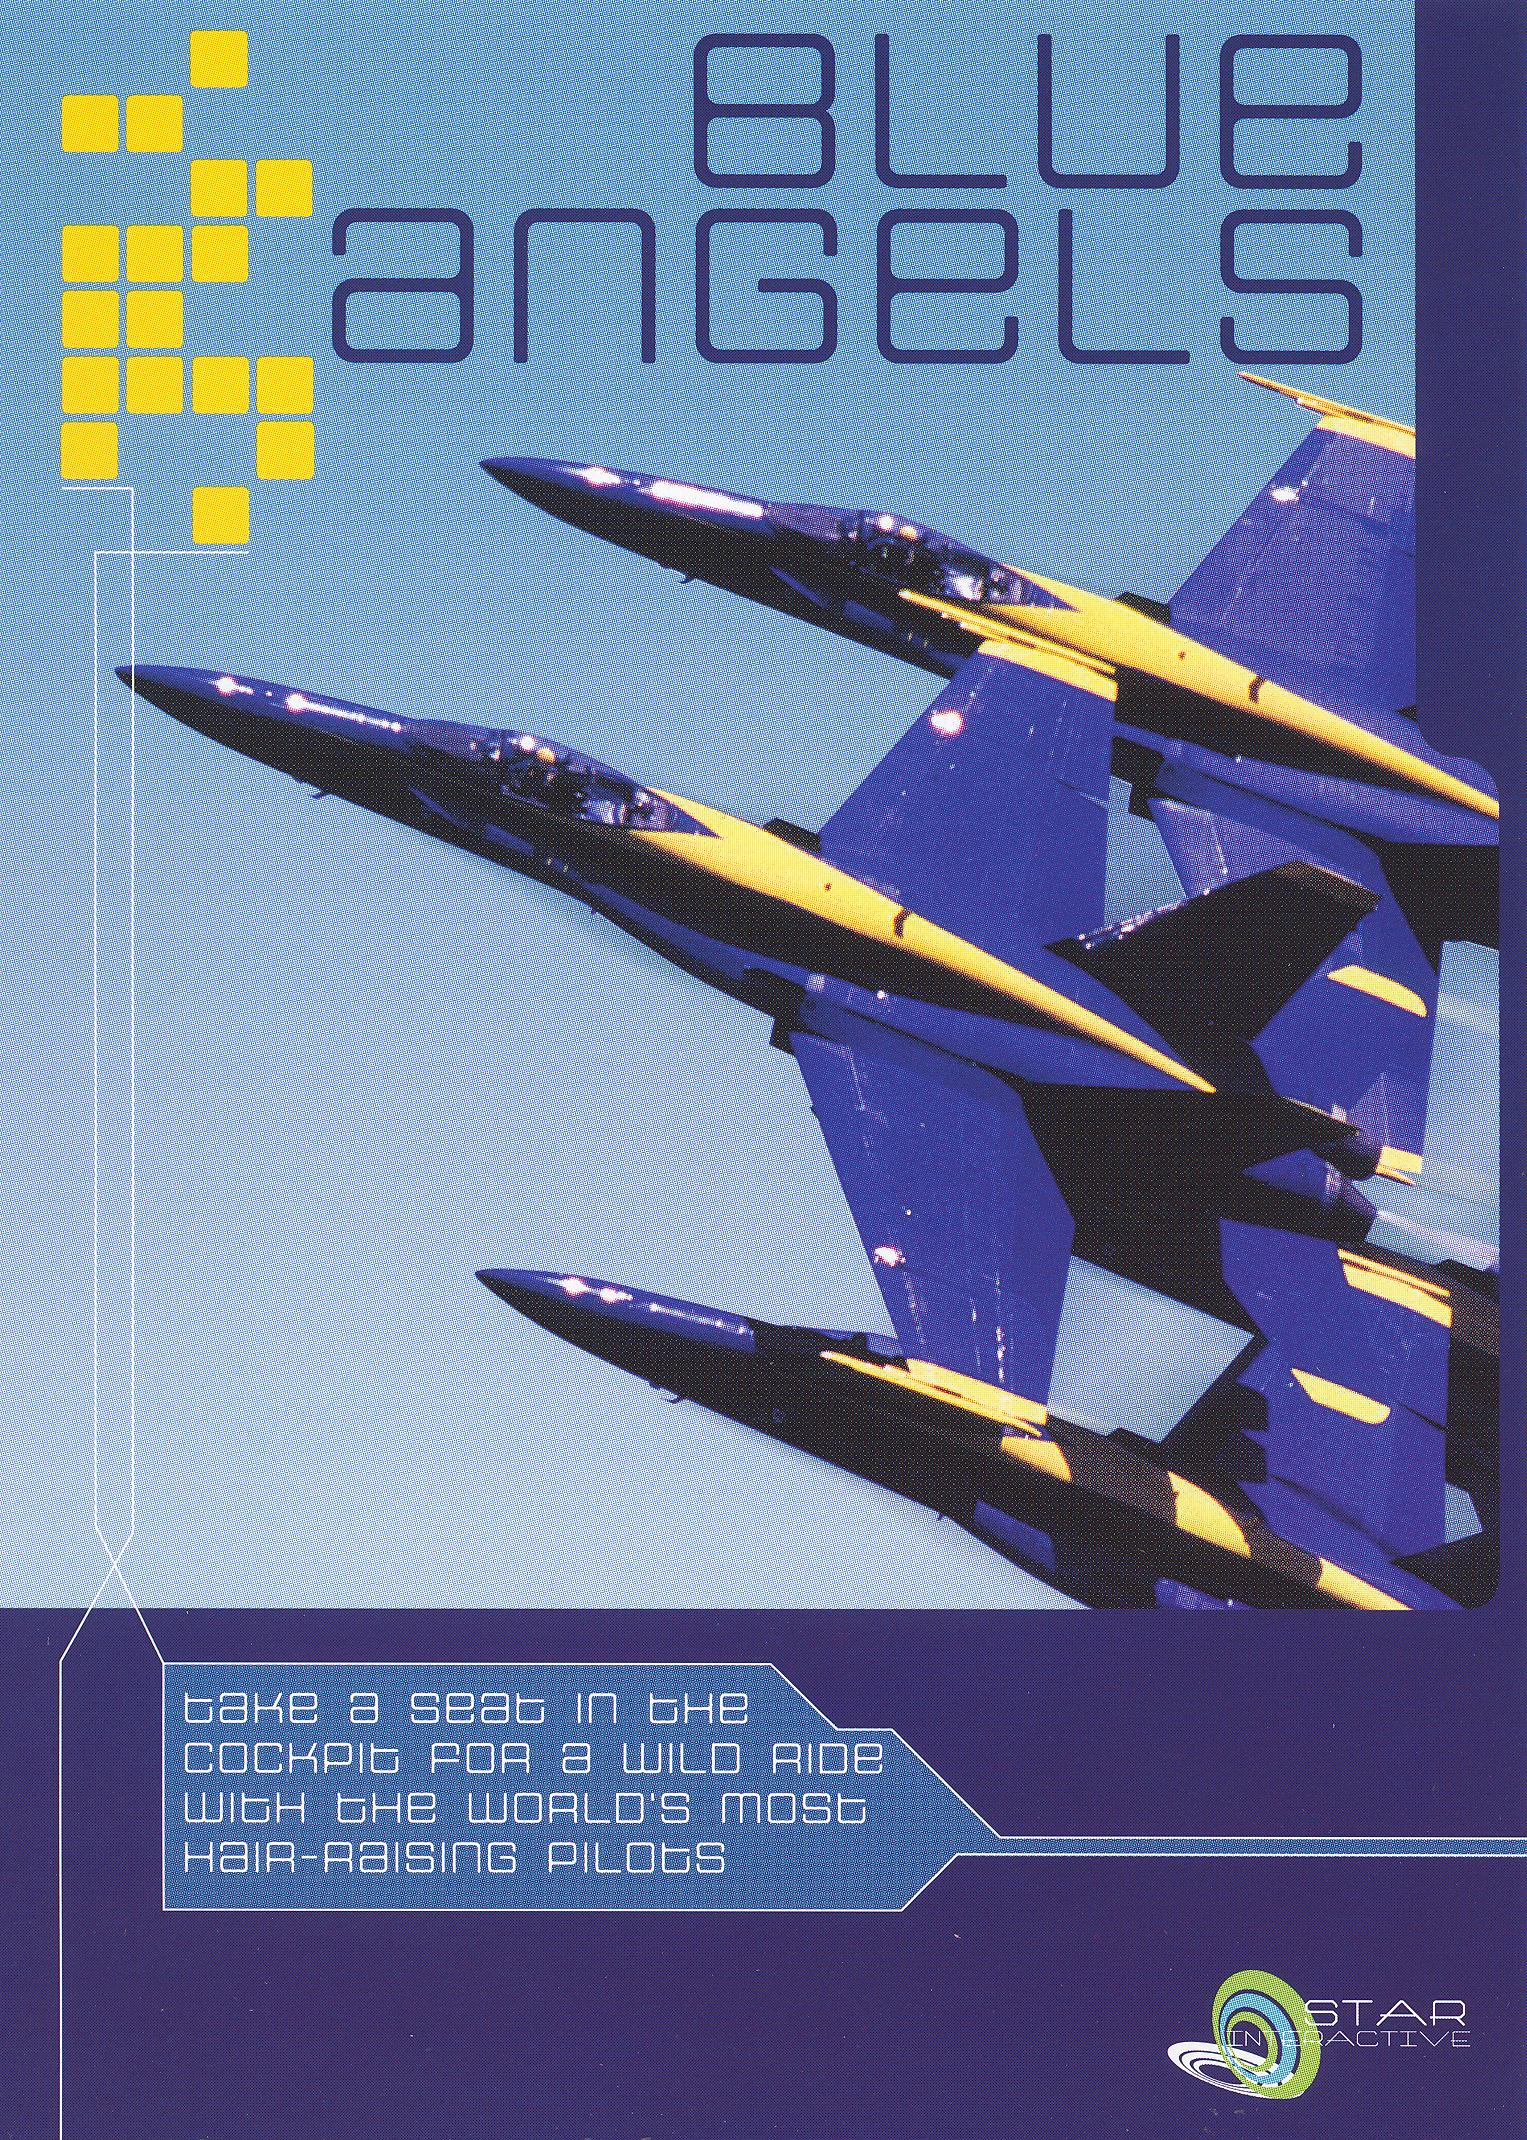 Jets: Altitude & Attitude, Vol. 4 - Blue Angels